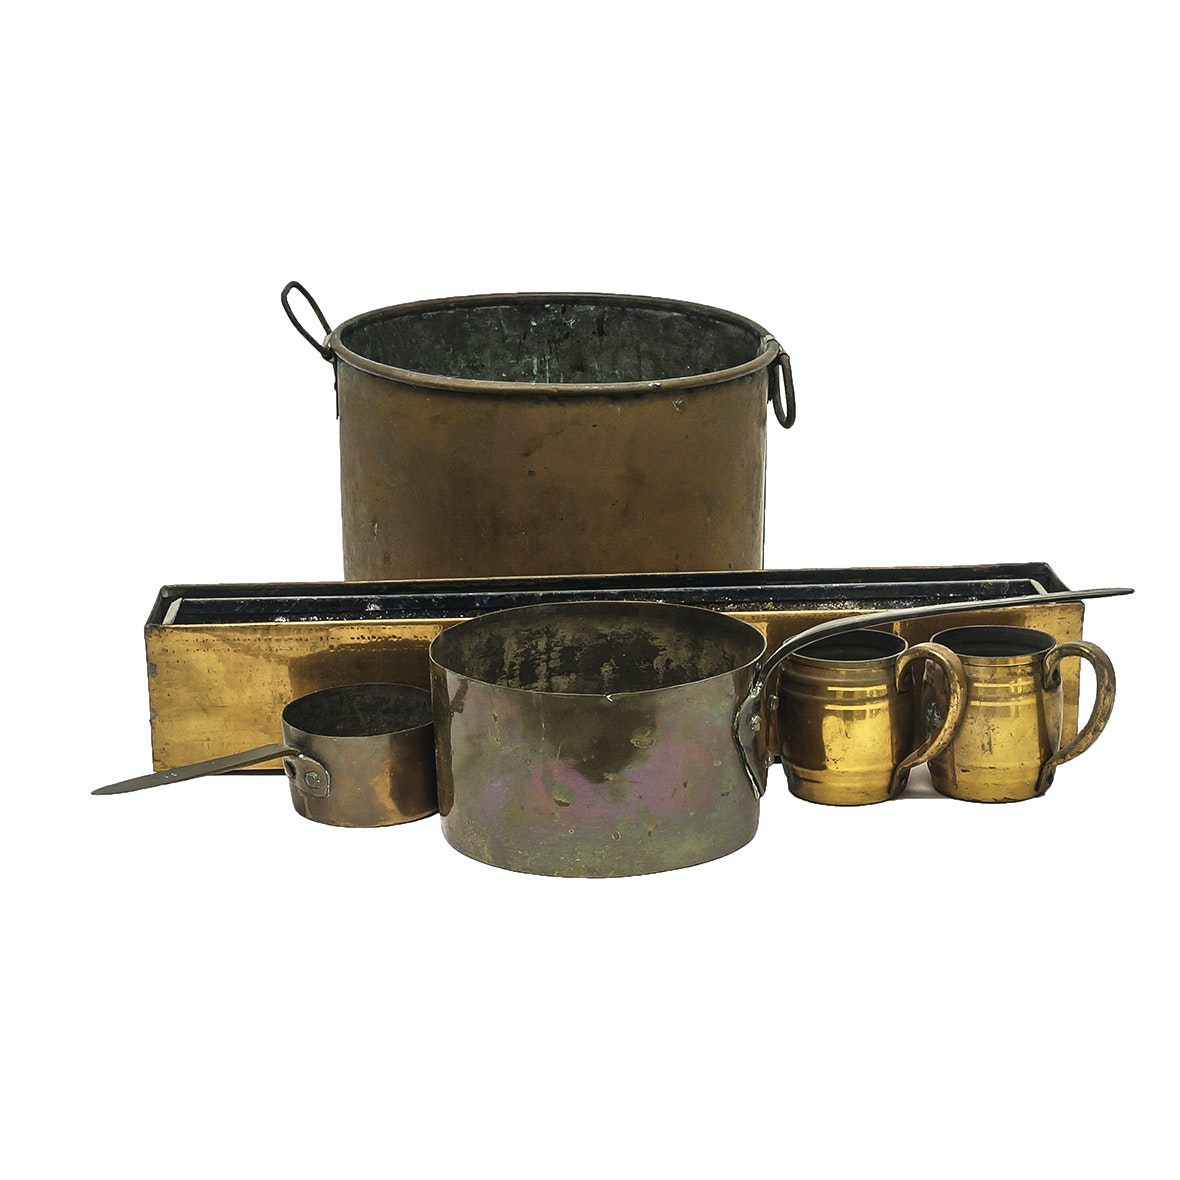 Assorted Copper Kitchenware and Décor